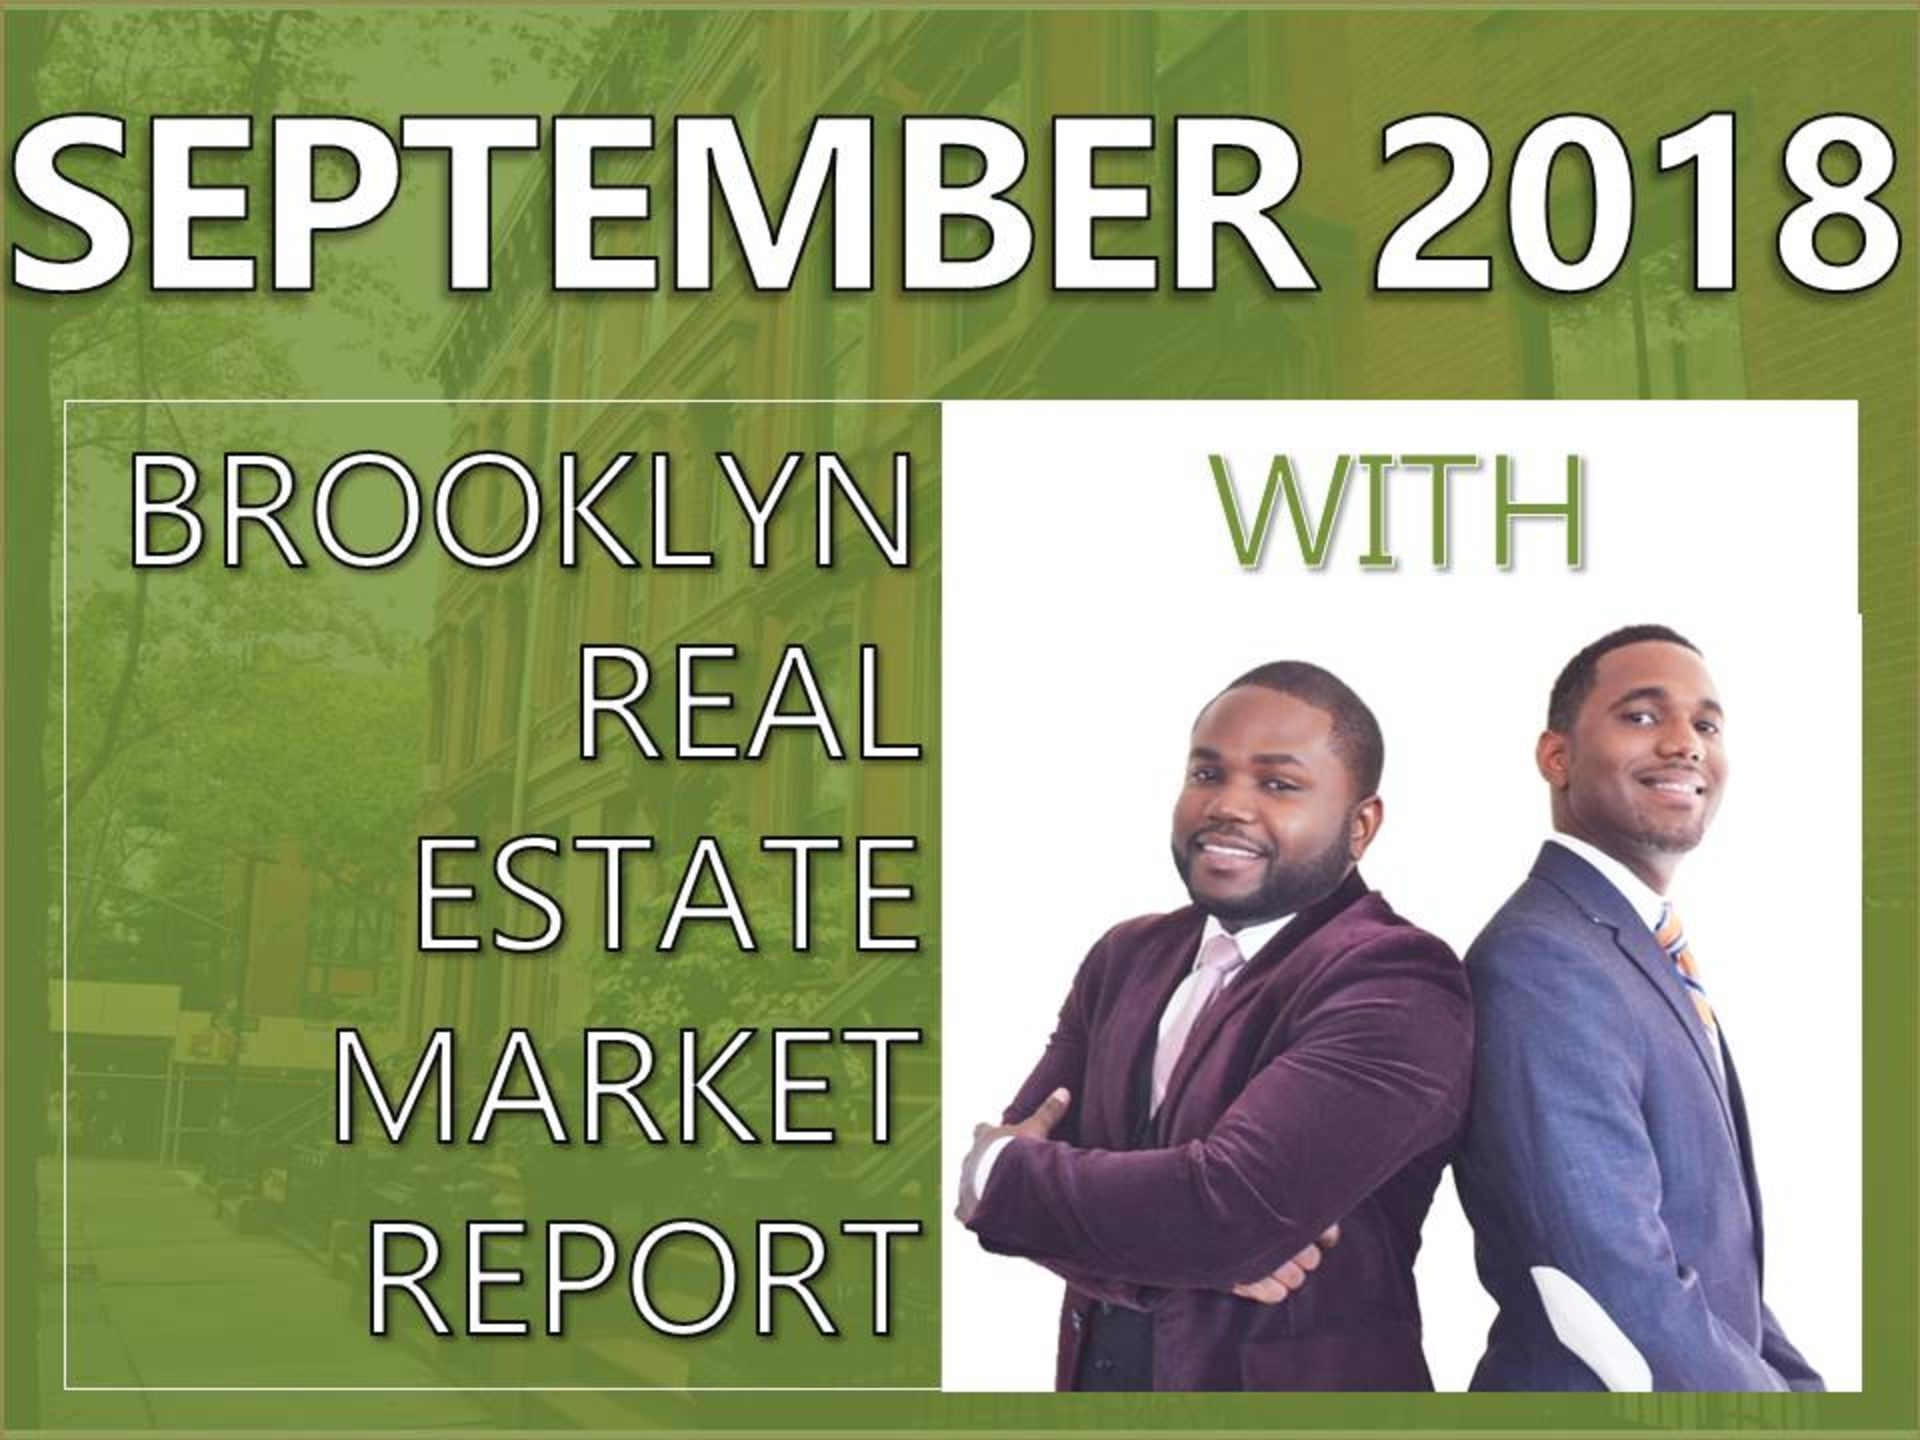 September 2018 Brooklyn Real Estate Market Report